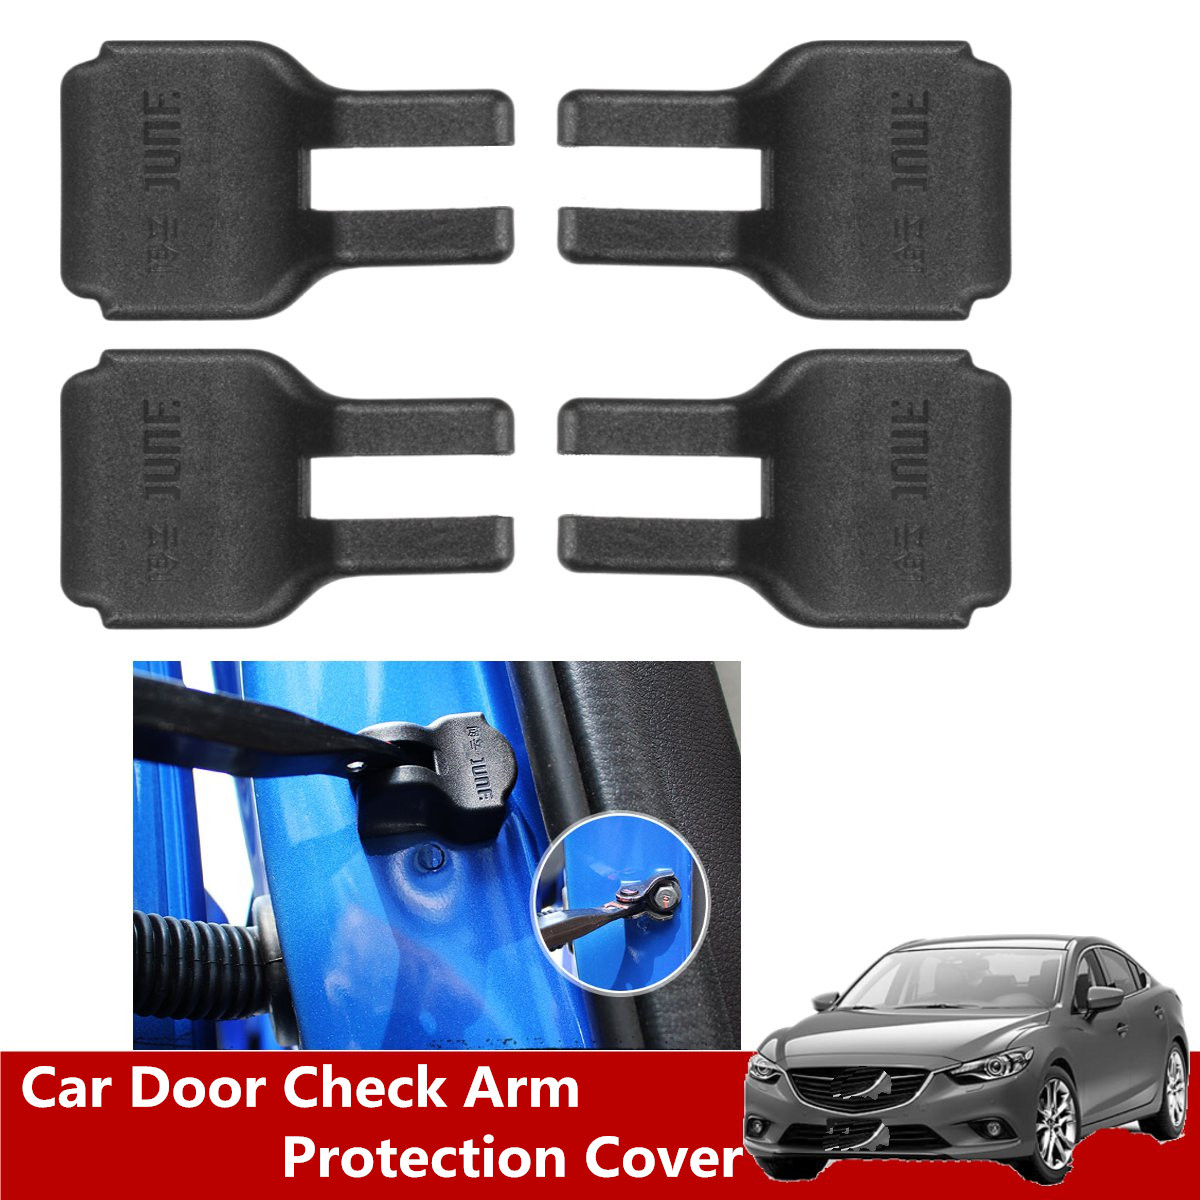 4 Pcs Car Door Check Arm Waterproof Protection Cover for <font><b>Mazda</b></font> 2/3/5/6 for <font><b>Mazda</b></font> <font><b>CX</b></font>-5/7/<font><b>9</b></font> 2010 <font><b>2011</b></font> 2012 2013 2014 2015 2016 image